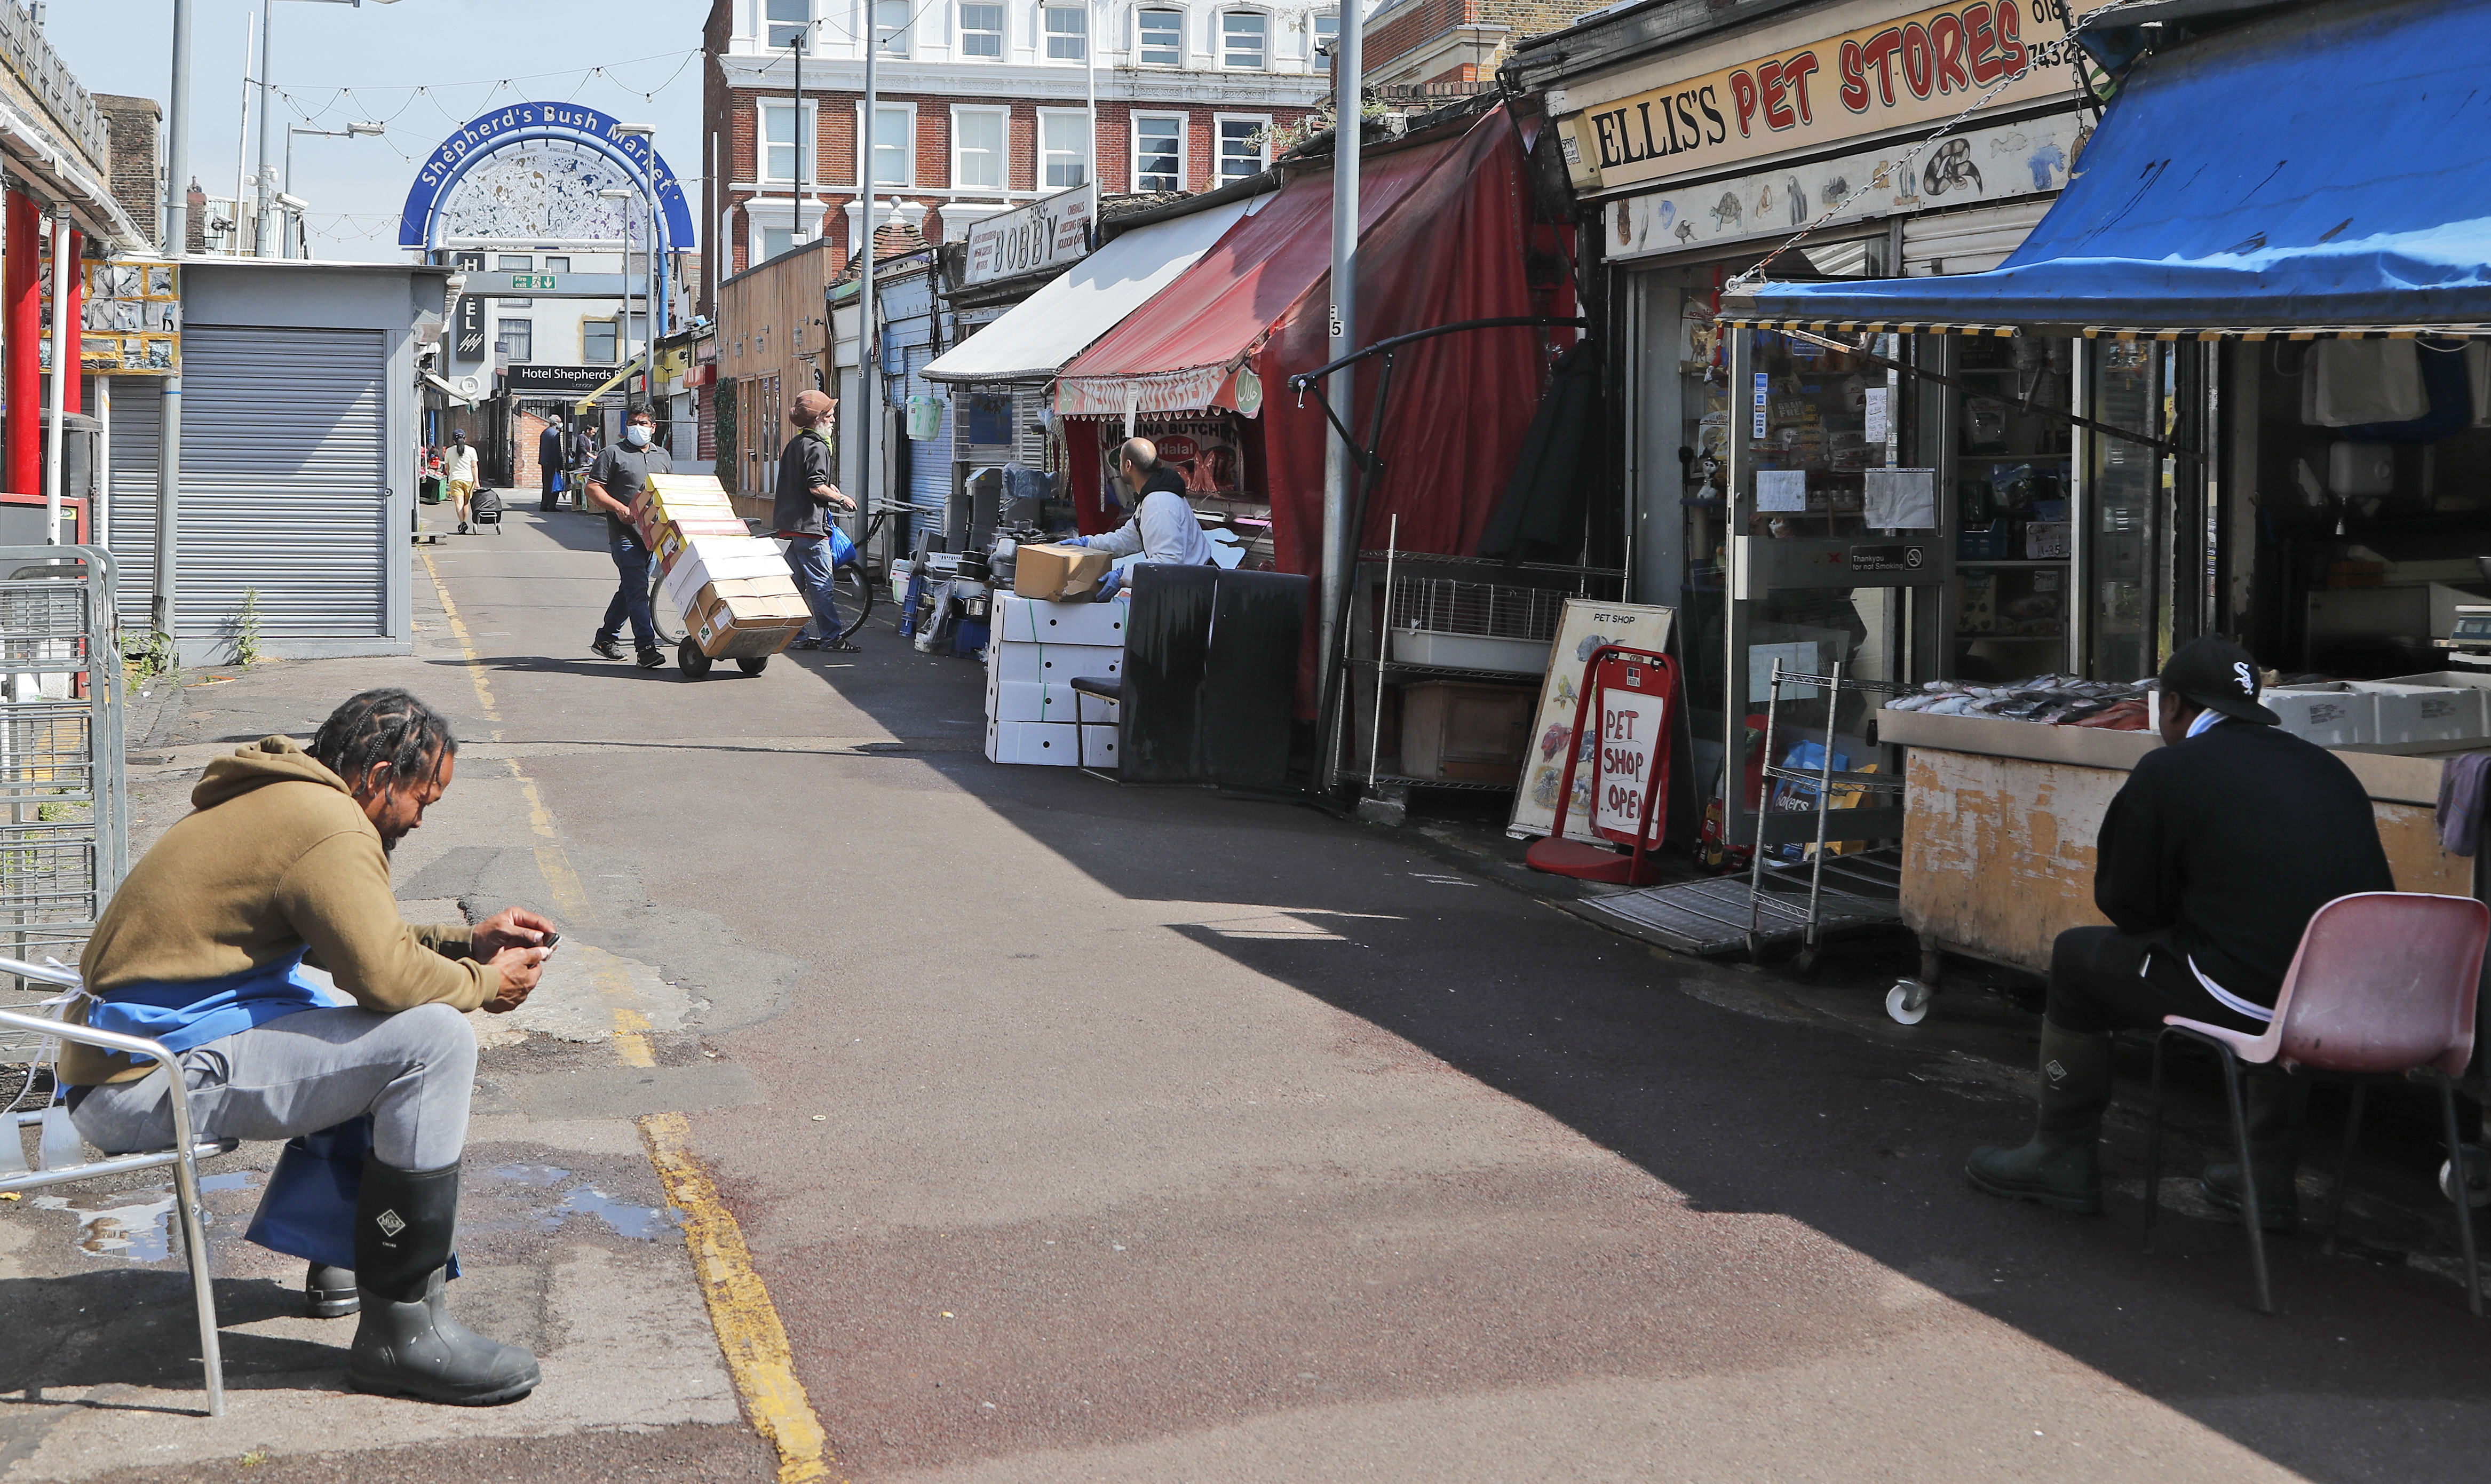 Shop owners wait for customers and prepare at Sherpherd's Bush Market in London, Wednesday, May 27, 2020. Following the gradual easing of the COVID-19 lockdown, street markets will be allowed to reopen in Britain from Monday onwards. (AP Photo/Frank Augstein)